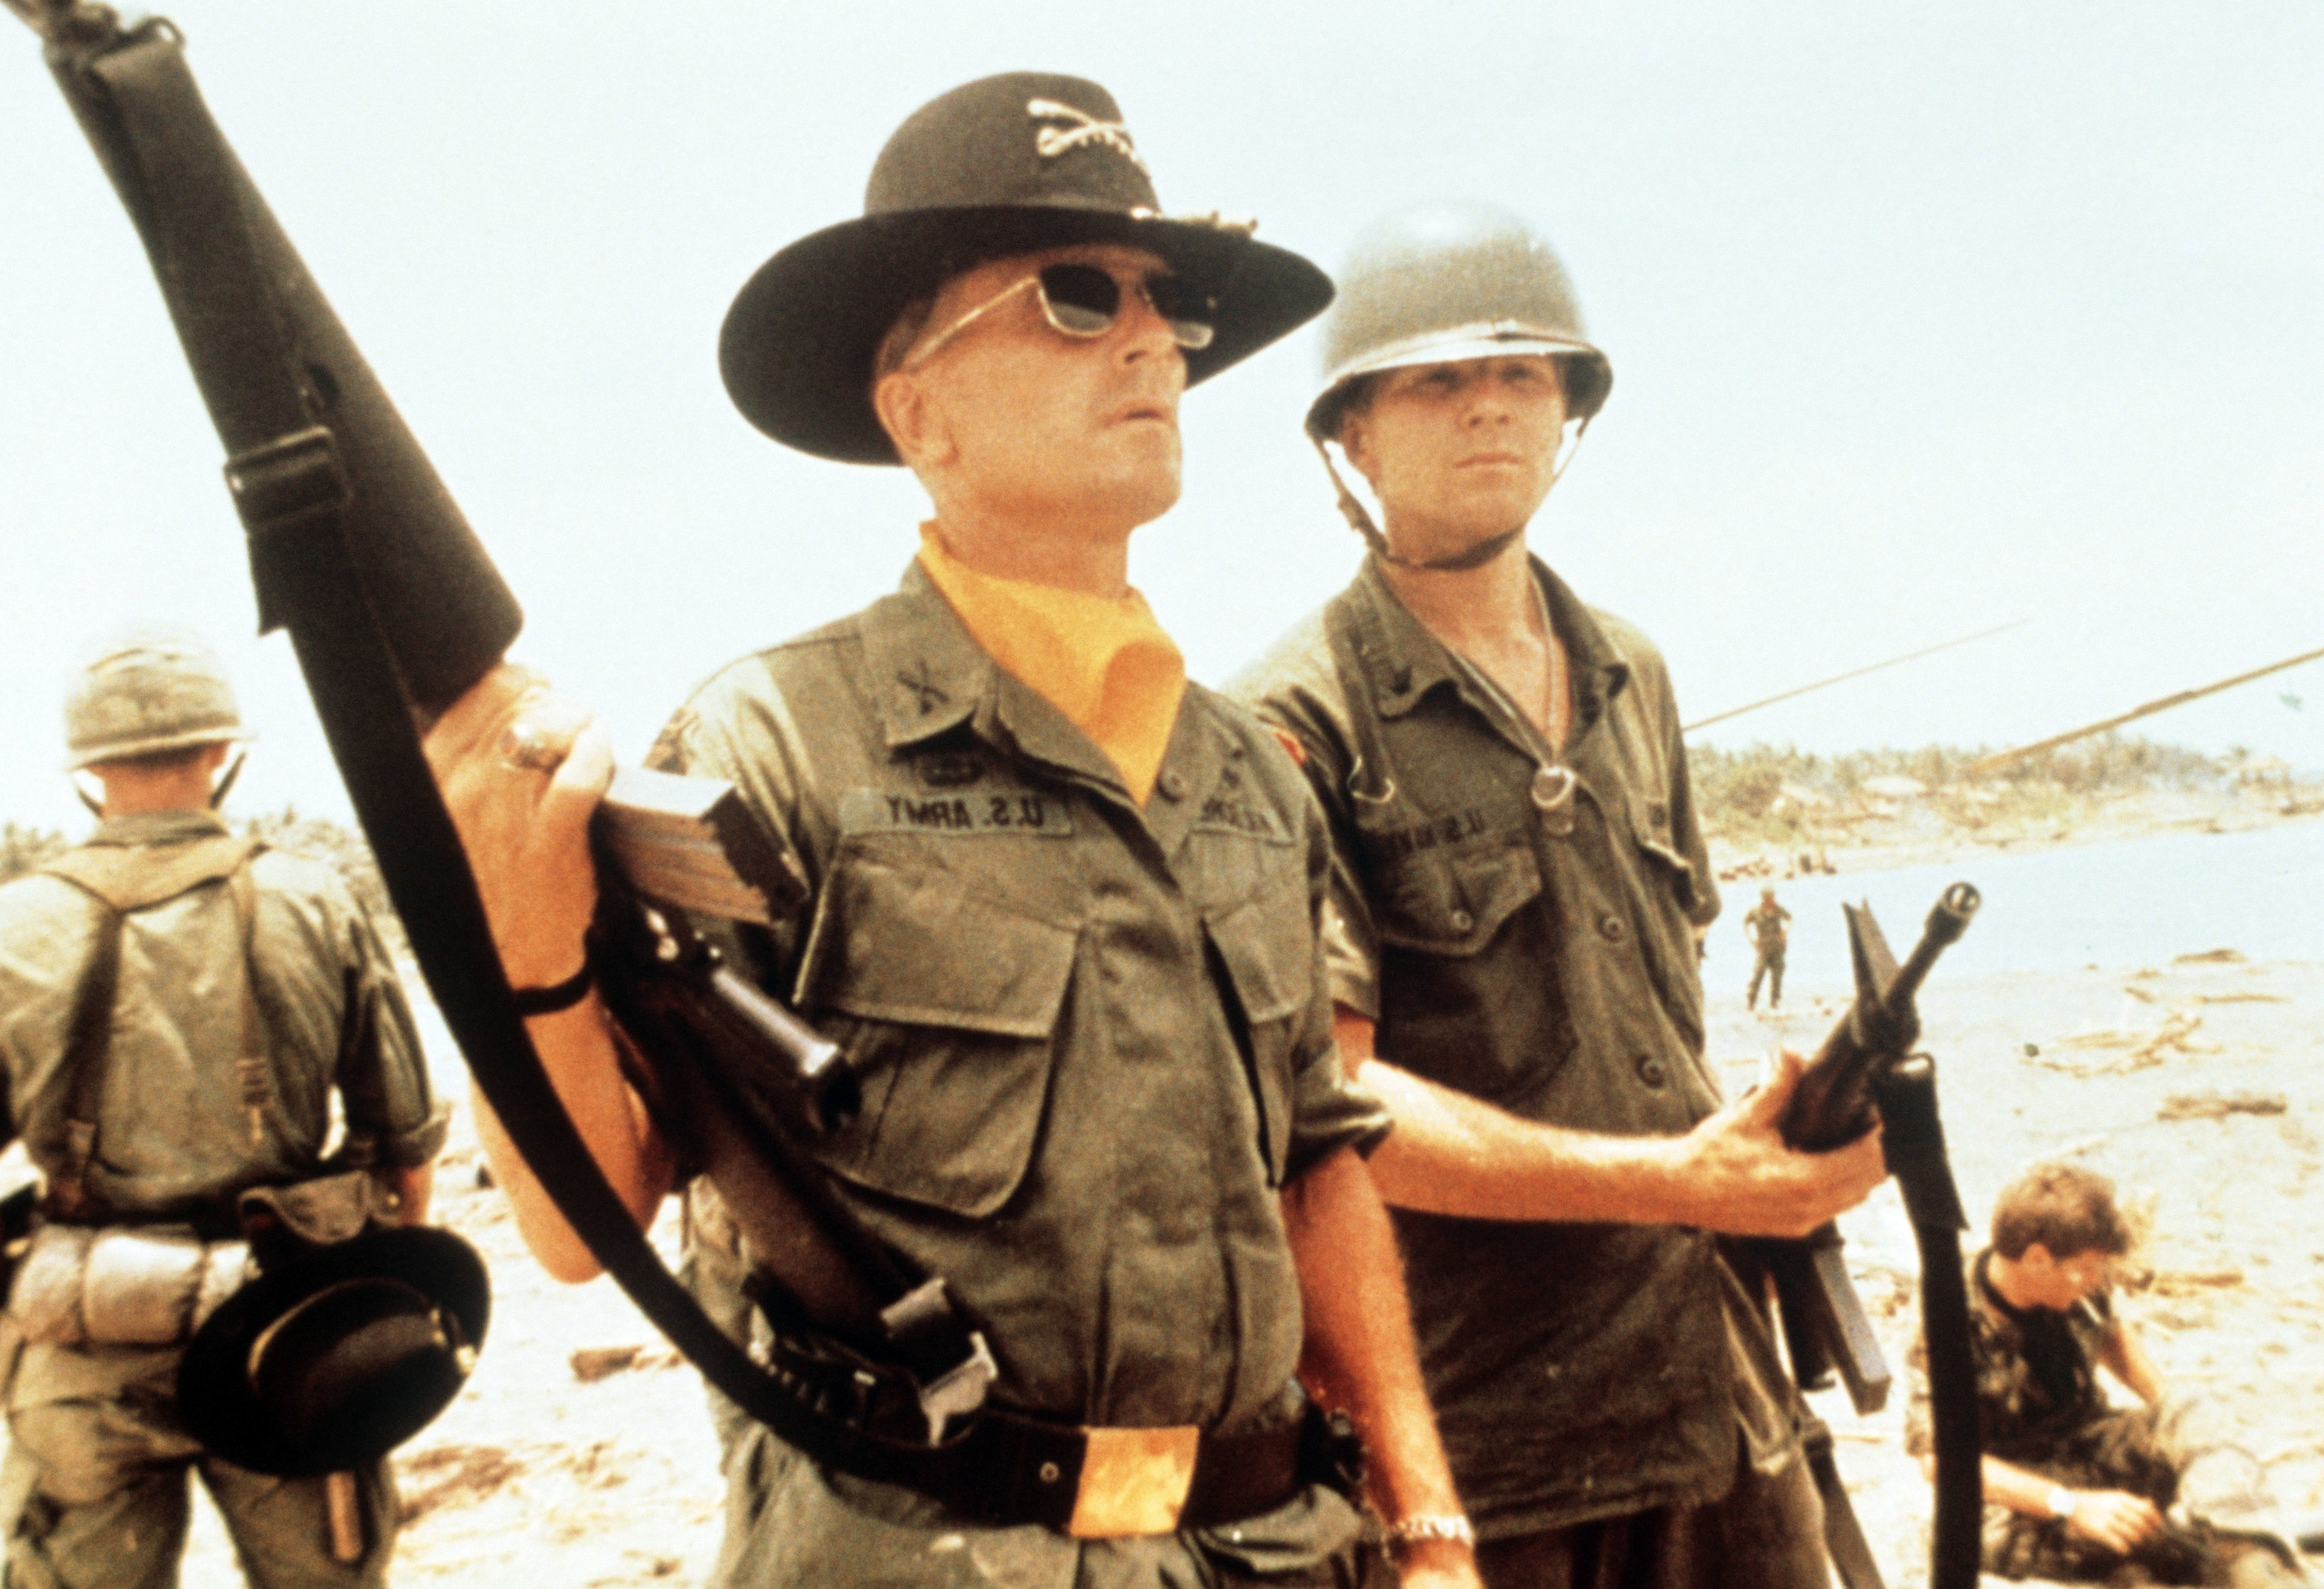 Robert Duvall as Lt Col Bill Kilgore and another soldier in the film